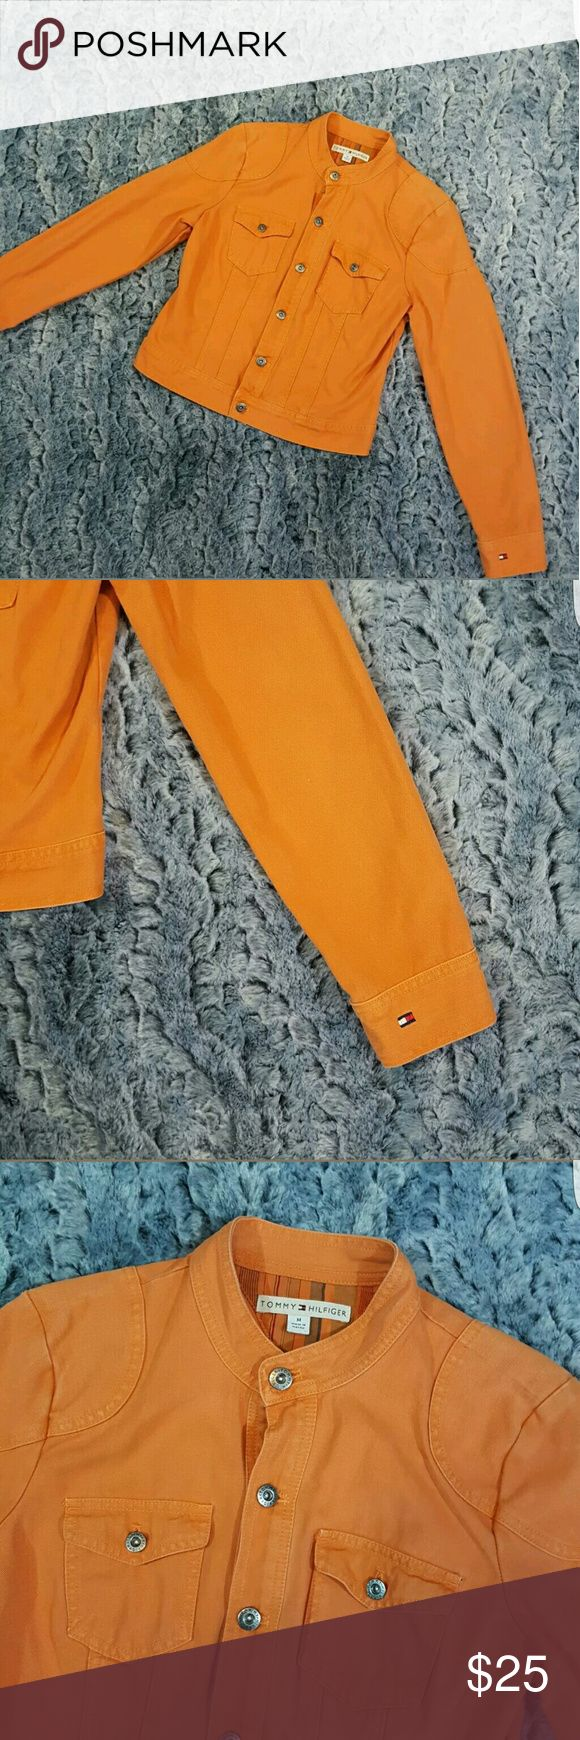 """Tommy Hilfiger Orange Jean Jacket Cropped Women's Tommy Hilfiger Orange Jean Jacket Button Down Cropped Size Medium  Measurements:  19"""" armpit to armpit  16.5"""" waist while laying flat  20"""" in length   G89 Tommy Hilfiger Jackets & Coats Jean Jackets"""